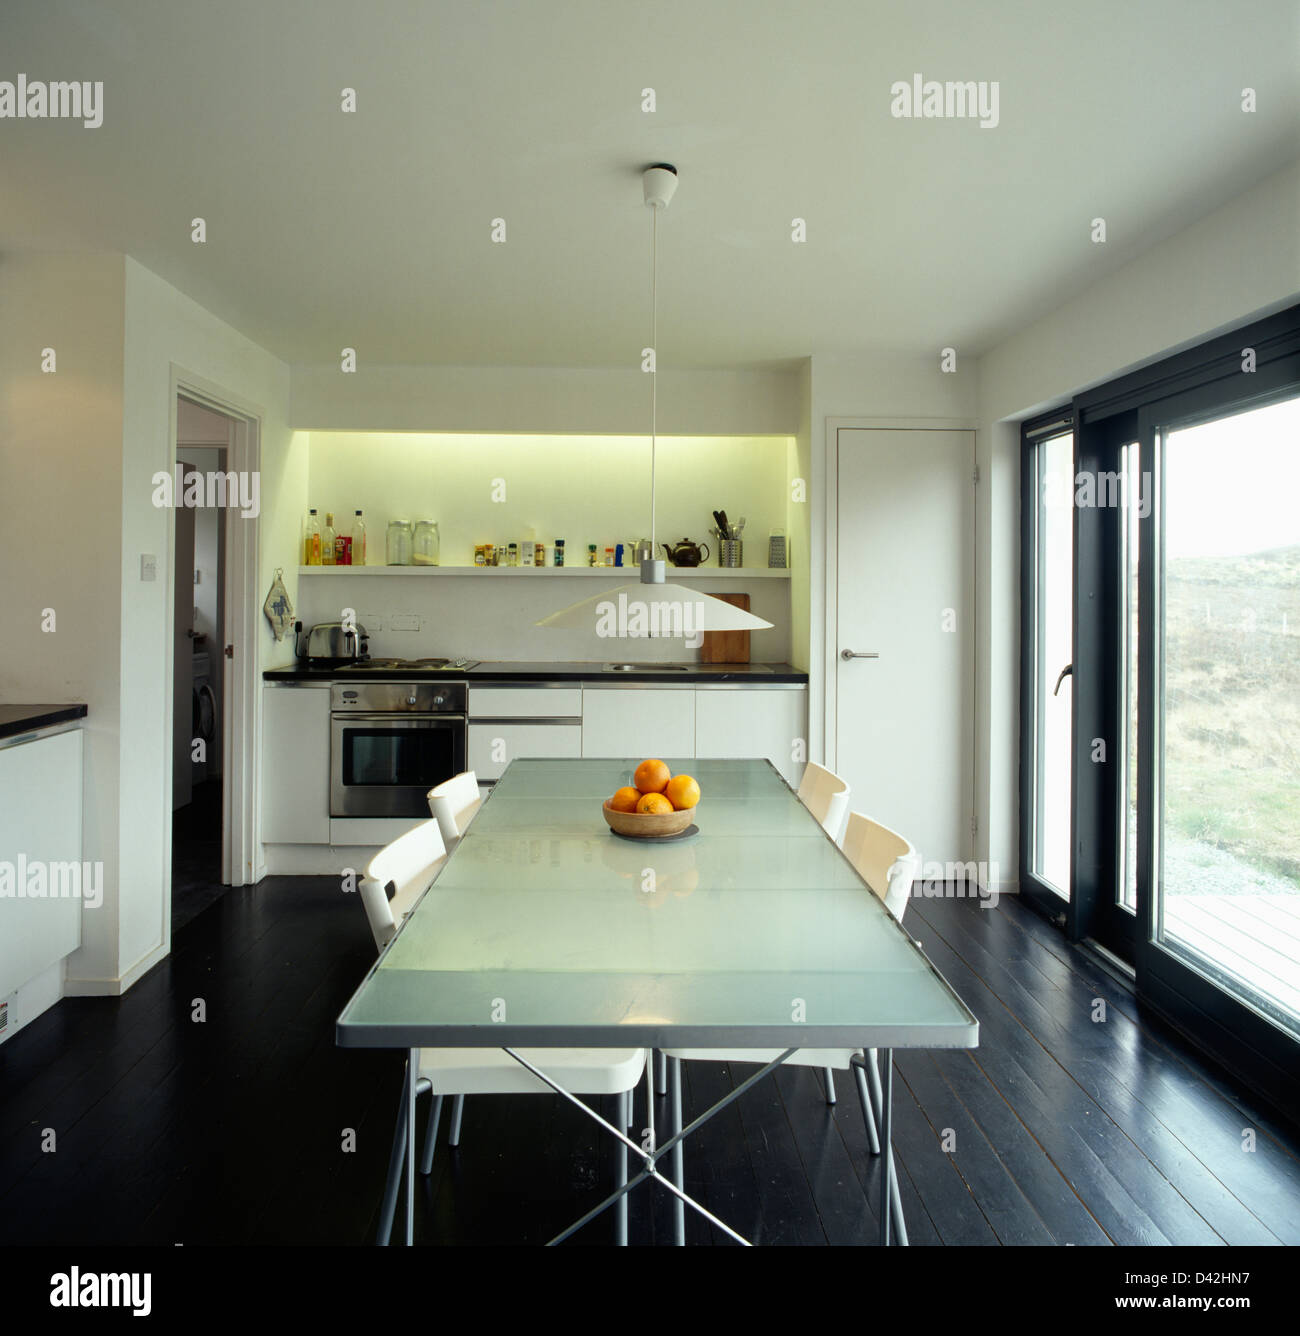 Strange White Chairs At Opaque Glass Topped Table In Modern Kitchen Inzonedesignstudio Interior Chair Design Inzonedesignstudiocom